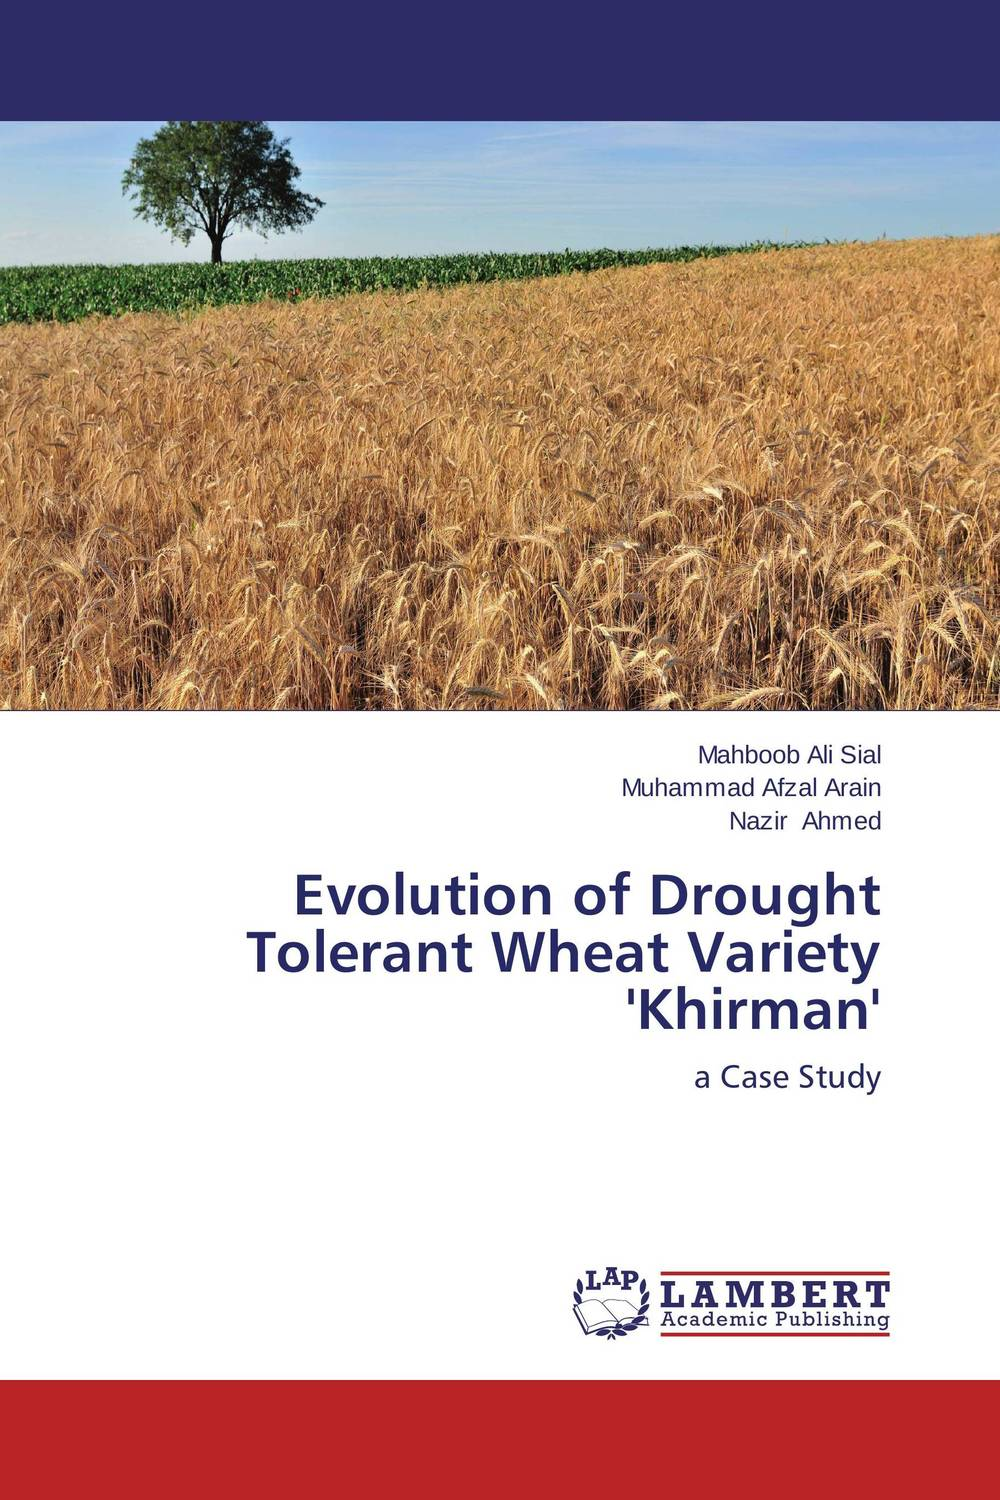 Evolution of Drought Tolerant Wheat Variety 'Khirman'